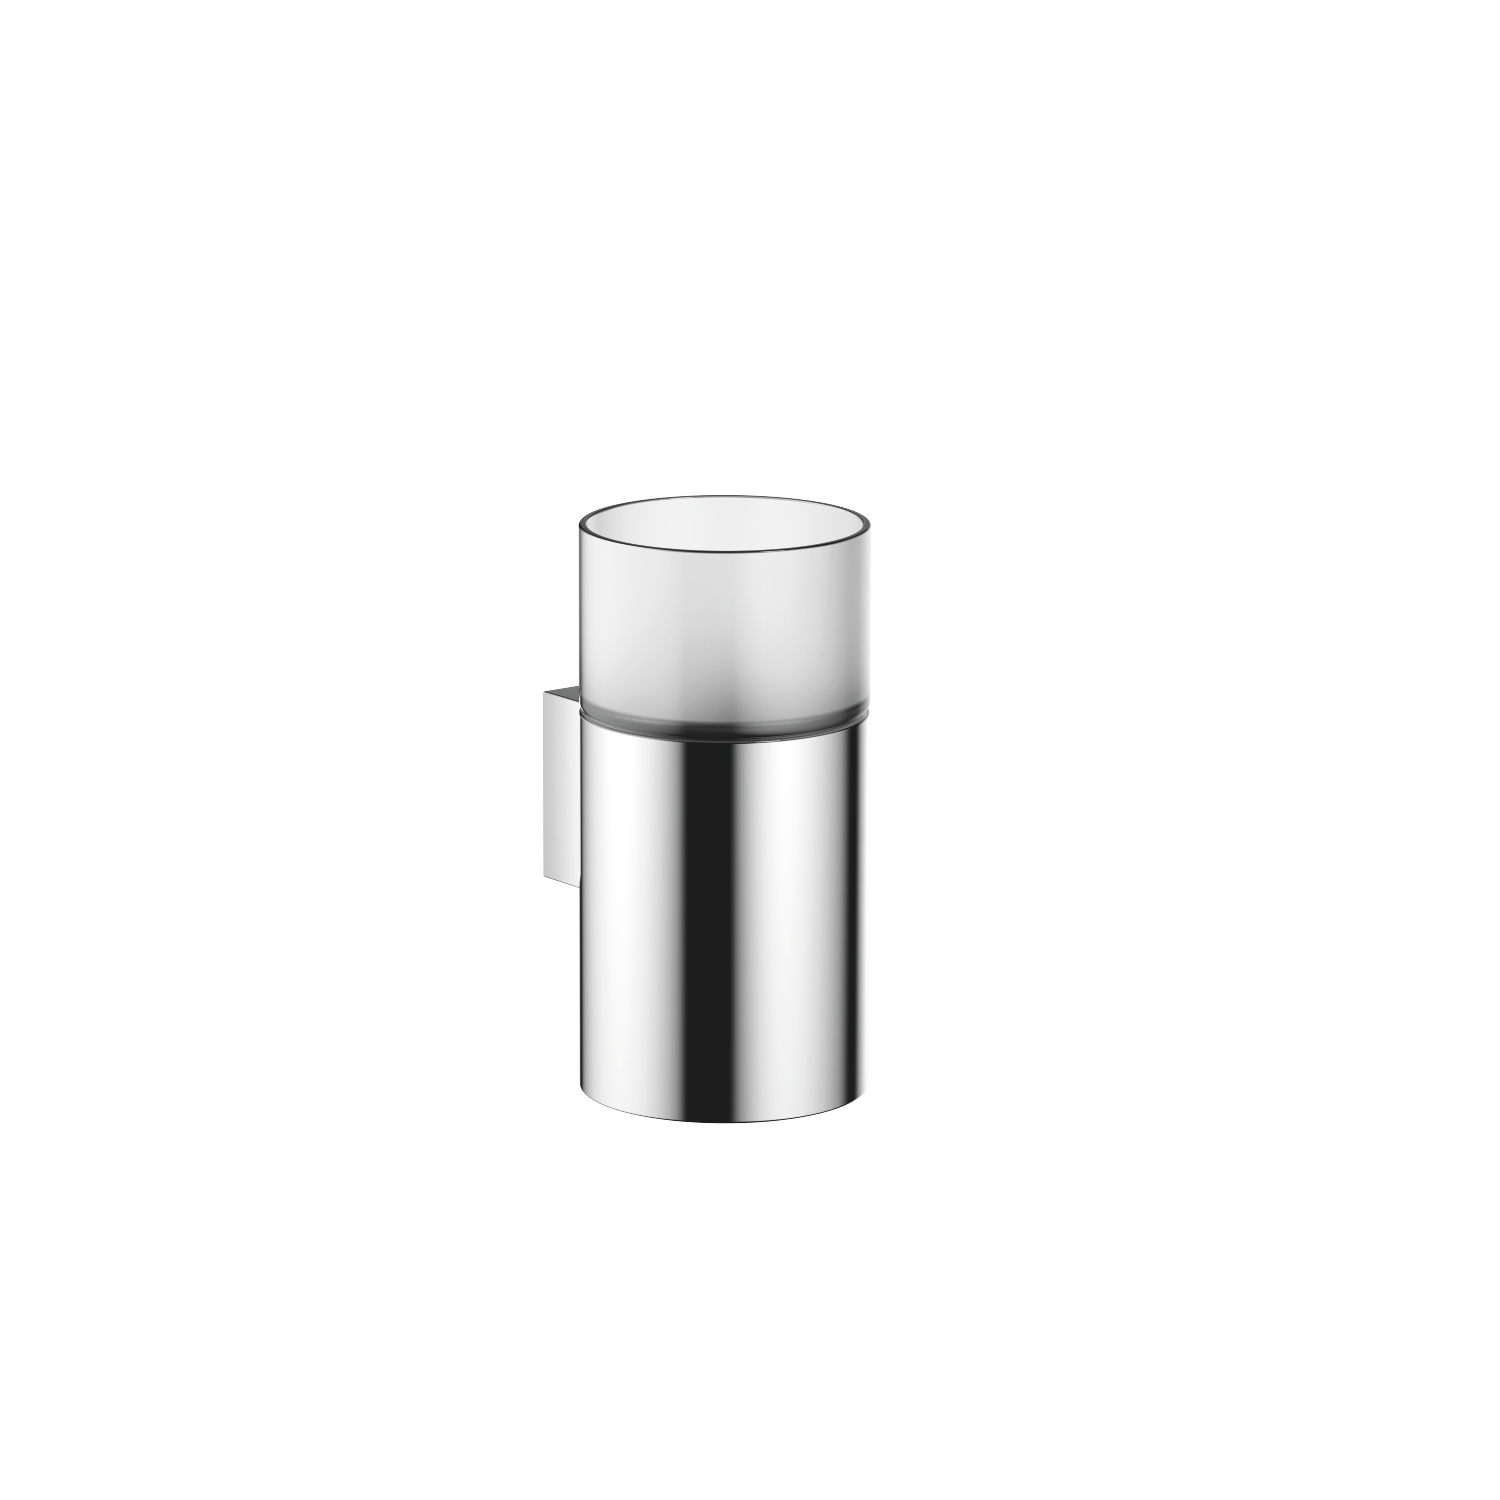 Tumbler holder wall model - polished chrome - 83 401 979-00